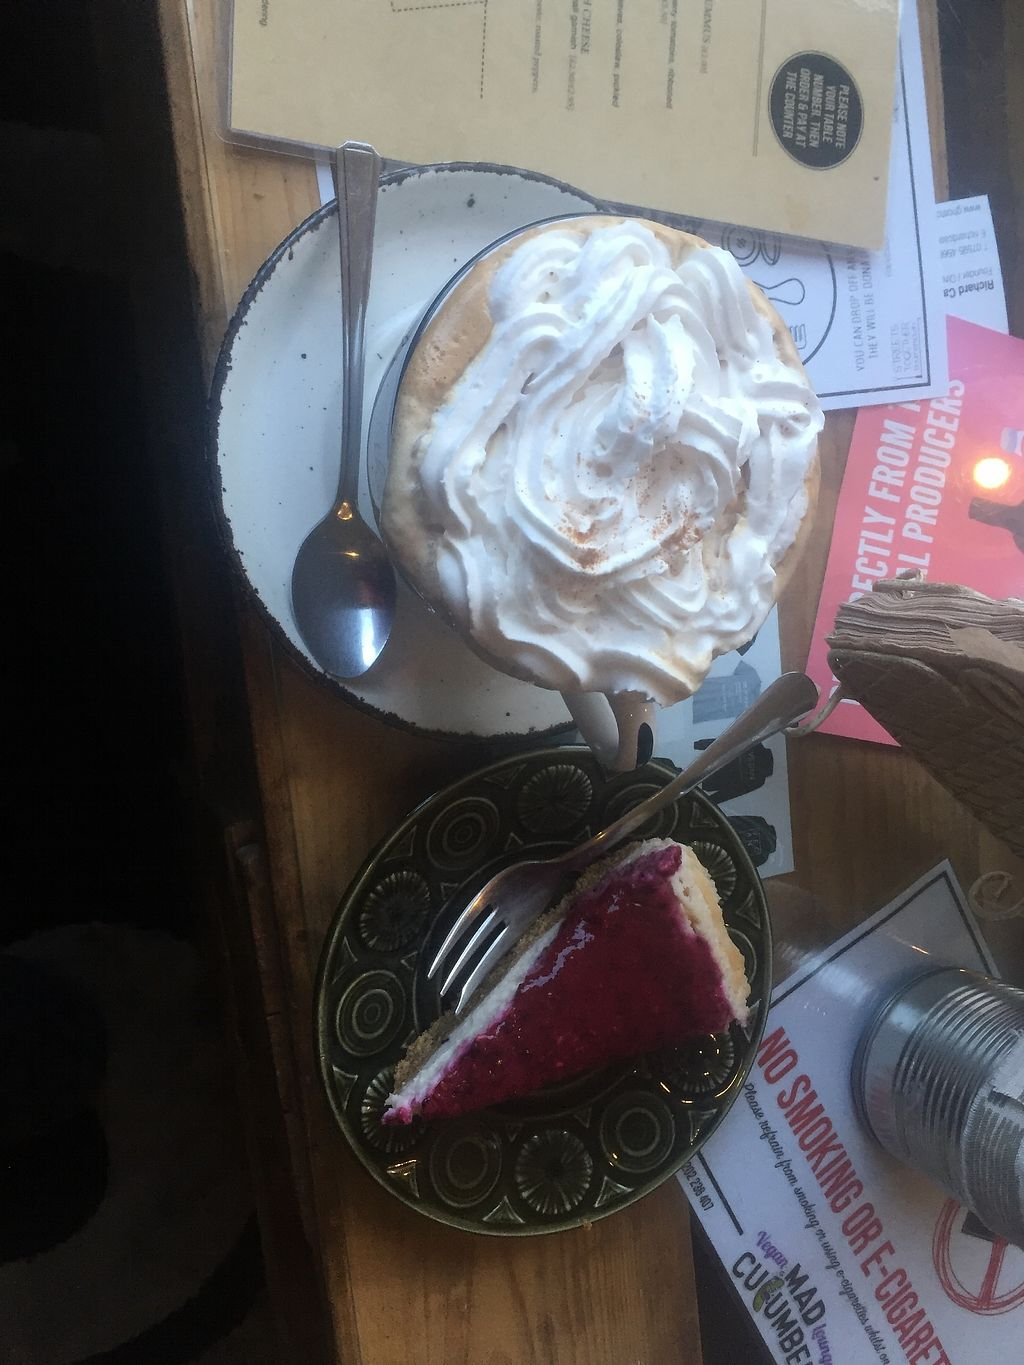 """Photo of Mad Cucumber - Vegan Lounge  by <a href=""""/members/profile/small_trees"""">small_trees</a> <br/>Coffee with squirty cream! <br/> January 29, 2018  - <a href='/contact/abuse/image/39613/352161'>Report</a>"""